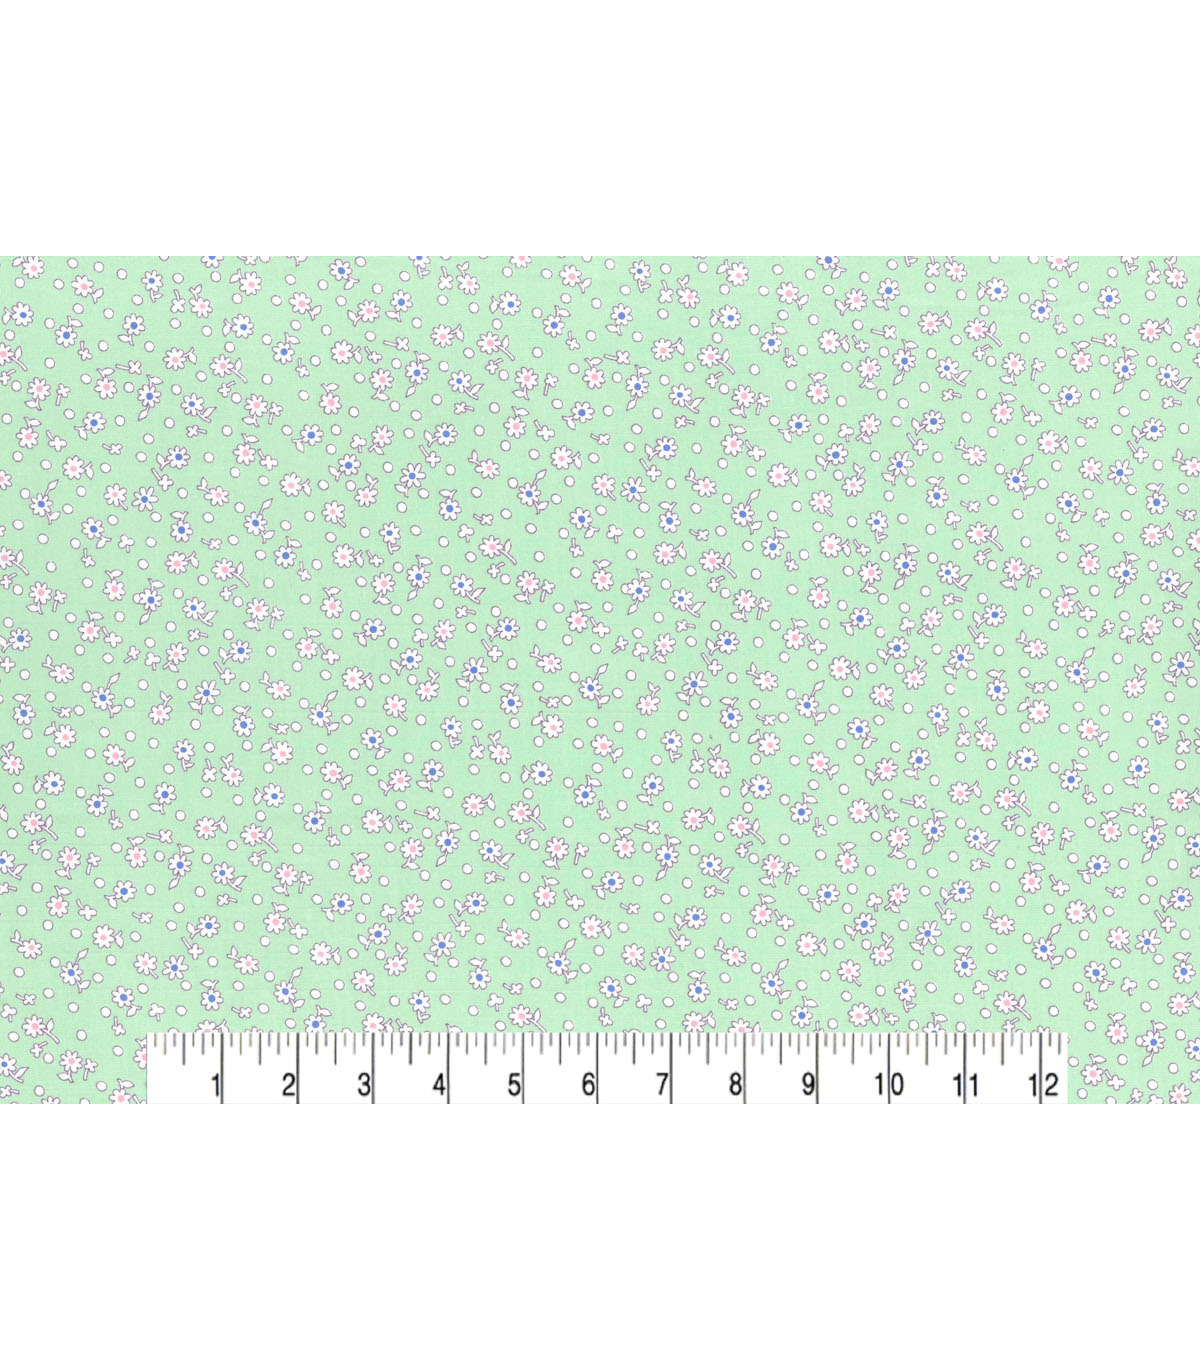 1930\u0027s Premium Cotton Print Fabric 43\u0027\u0027-Budding Flowers on Green